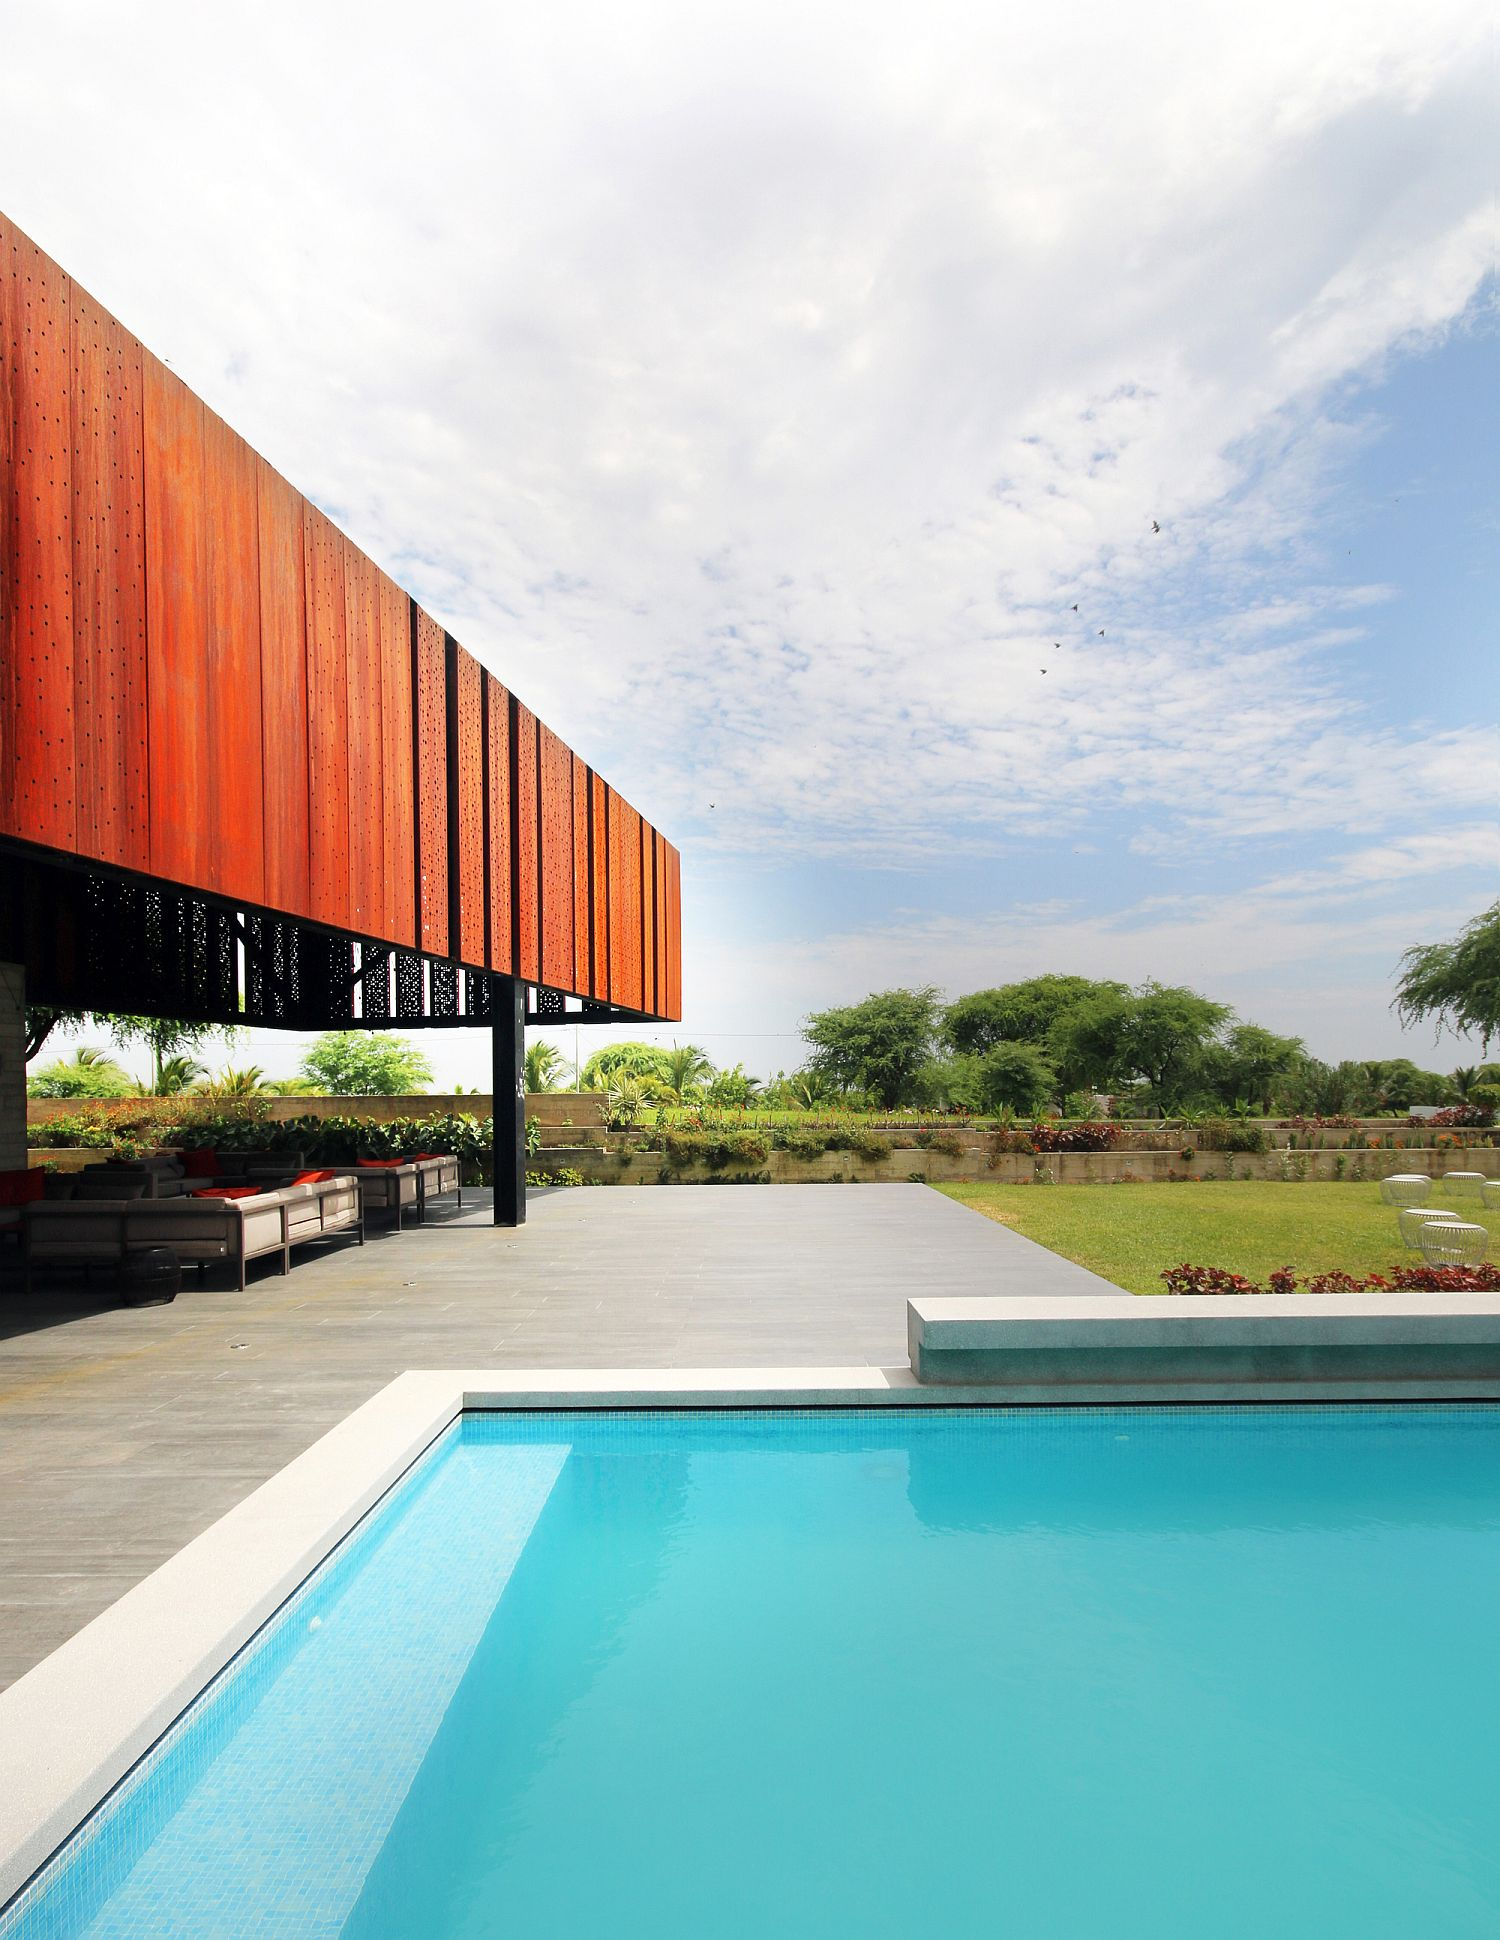 Pool area and outdoor ranch at the Peruvian holiday home